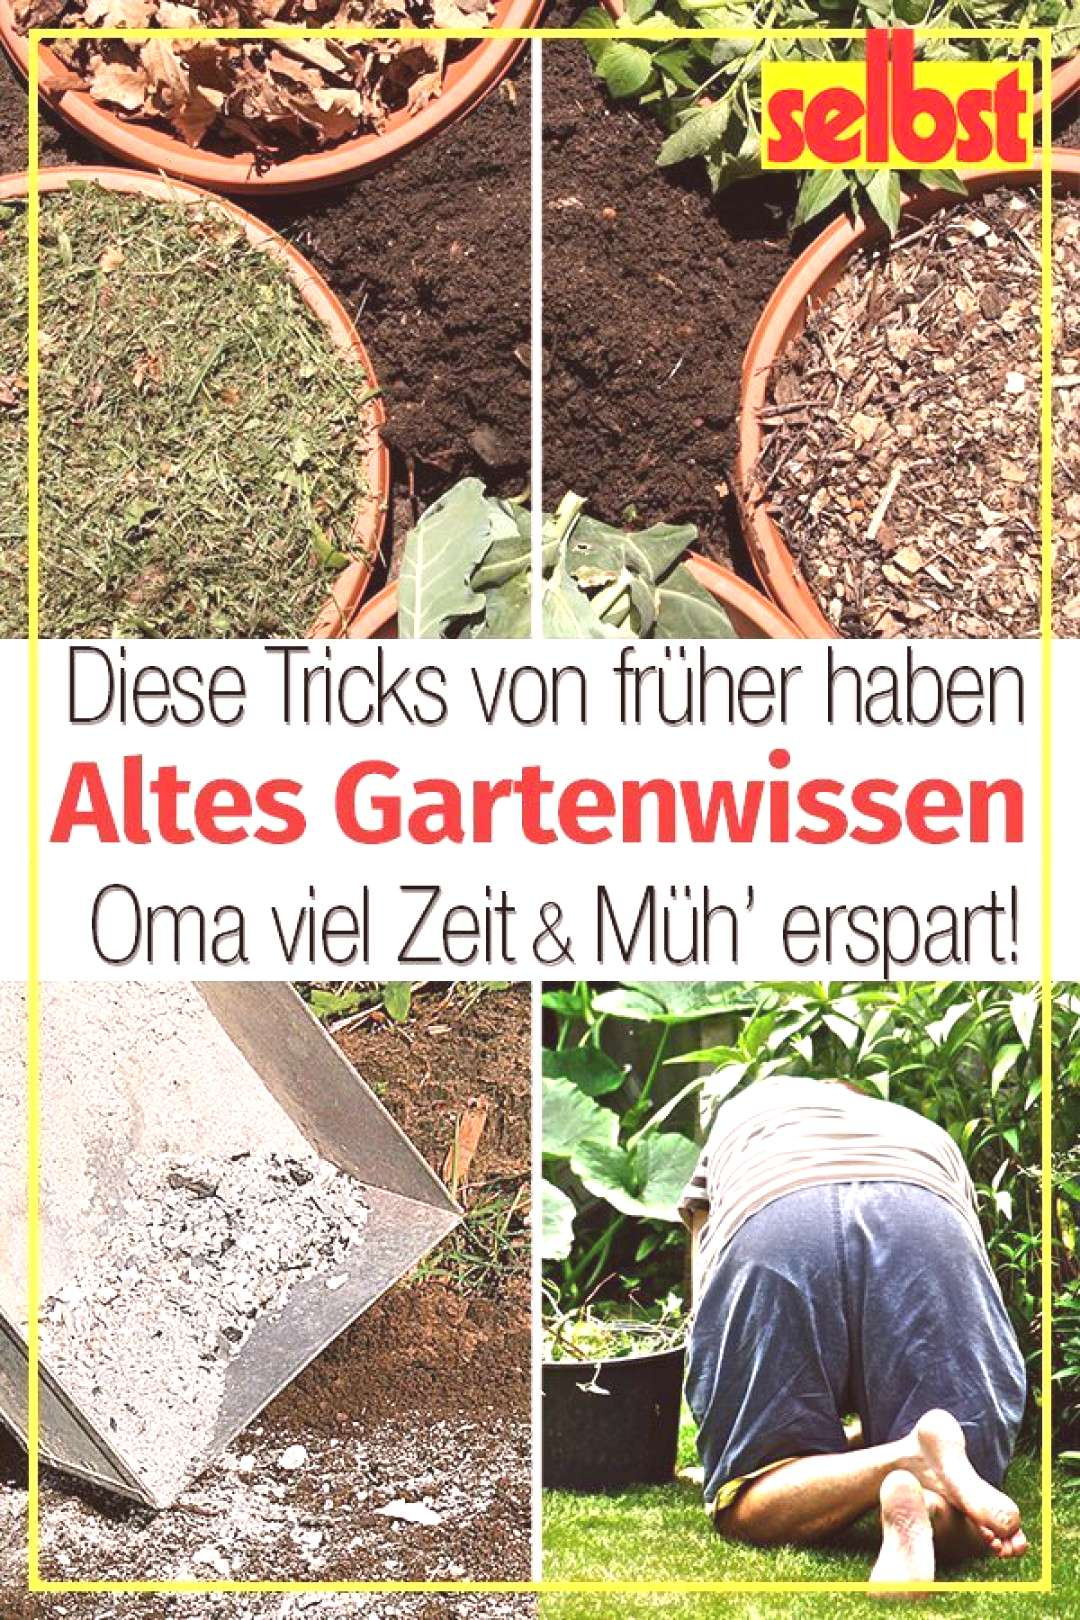 Gardening tips |  -  I would have used these gardening tips well at the start of the season: How ol